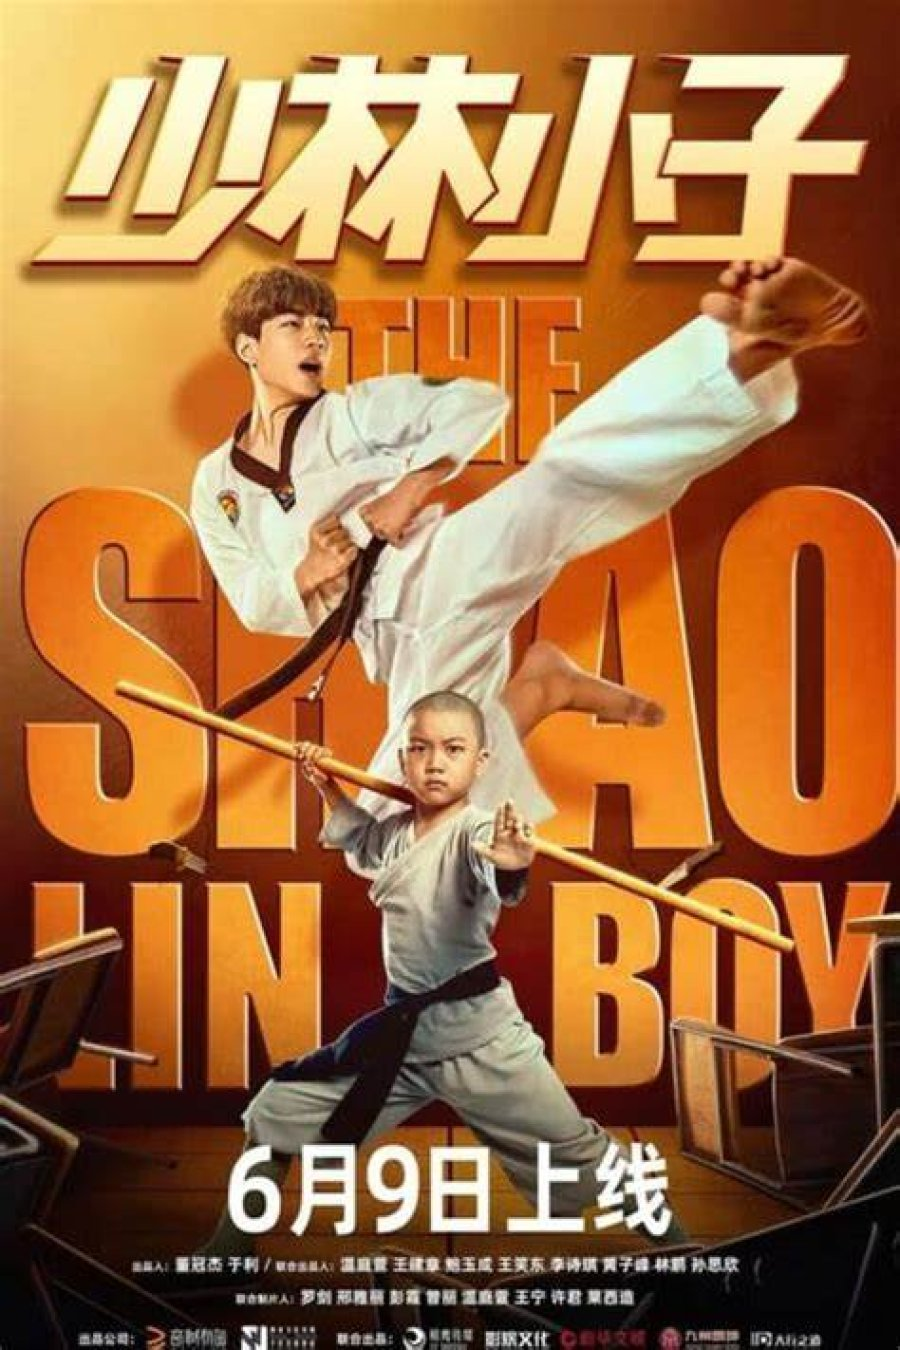 Download The Shaolin Boy (2021) Full Movie [In Chinese] With Hindi Subtitles | WebRip 720p [1XBET] FREE on 1XCinema.com & KatMovieHD.sk